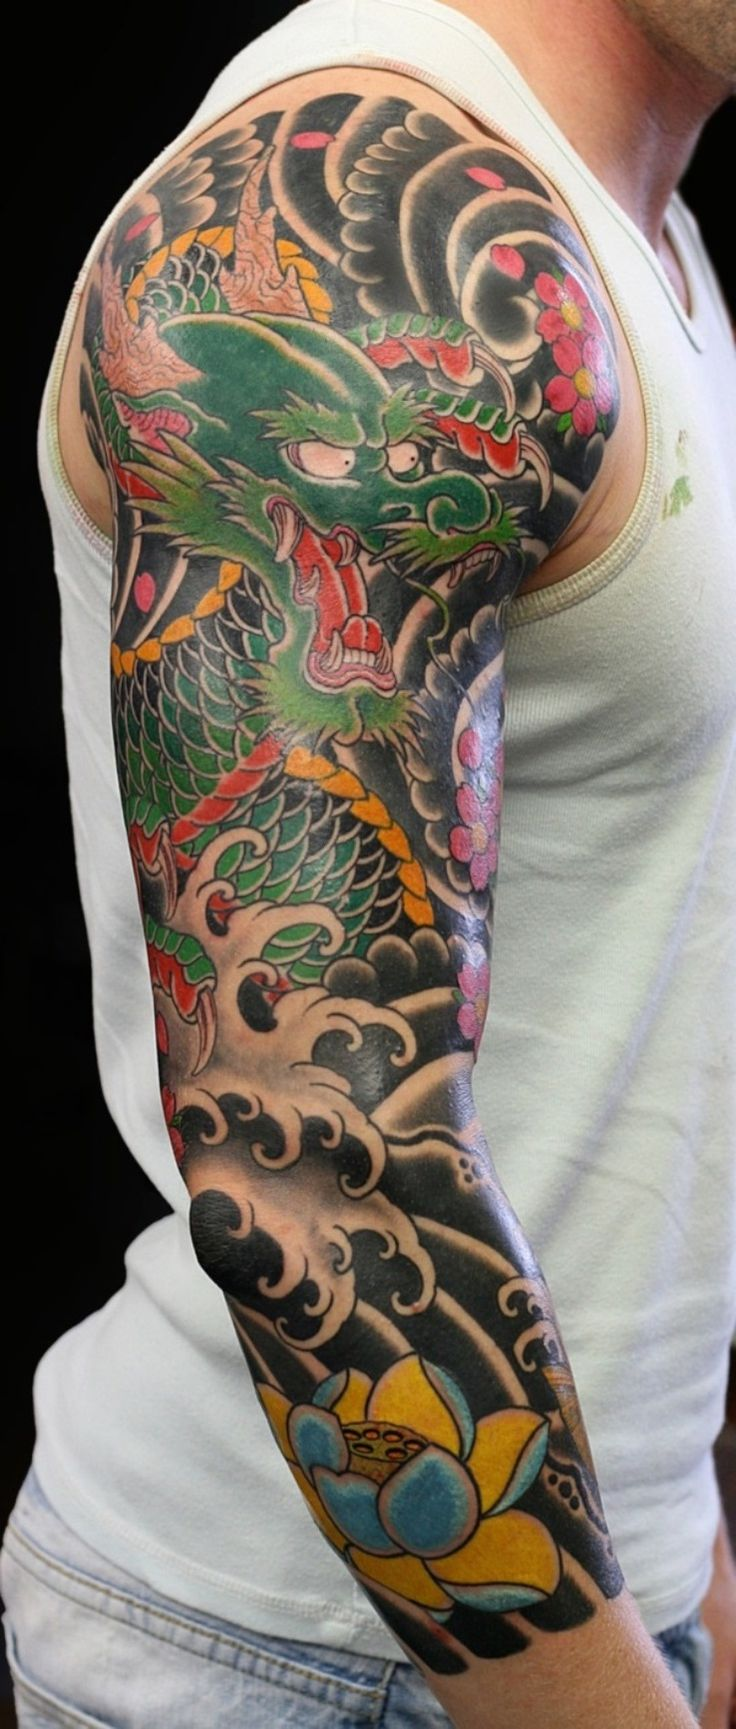 335 best images about dragon tats on pinterest tribal dragon tattoos koi dragon tattoo and. Black Bedroom Furniture Sets. Home Design Ideas